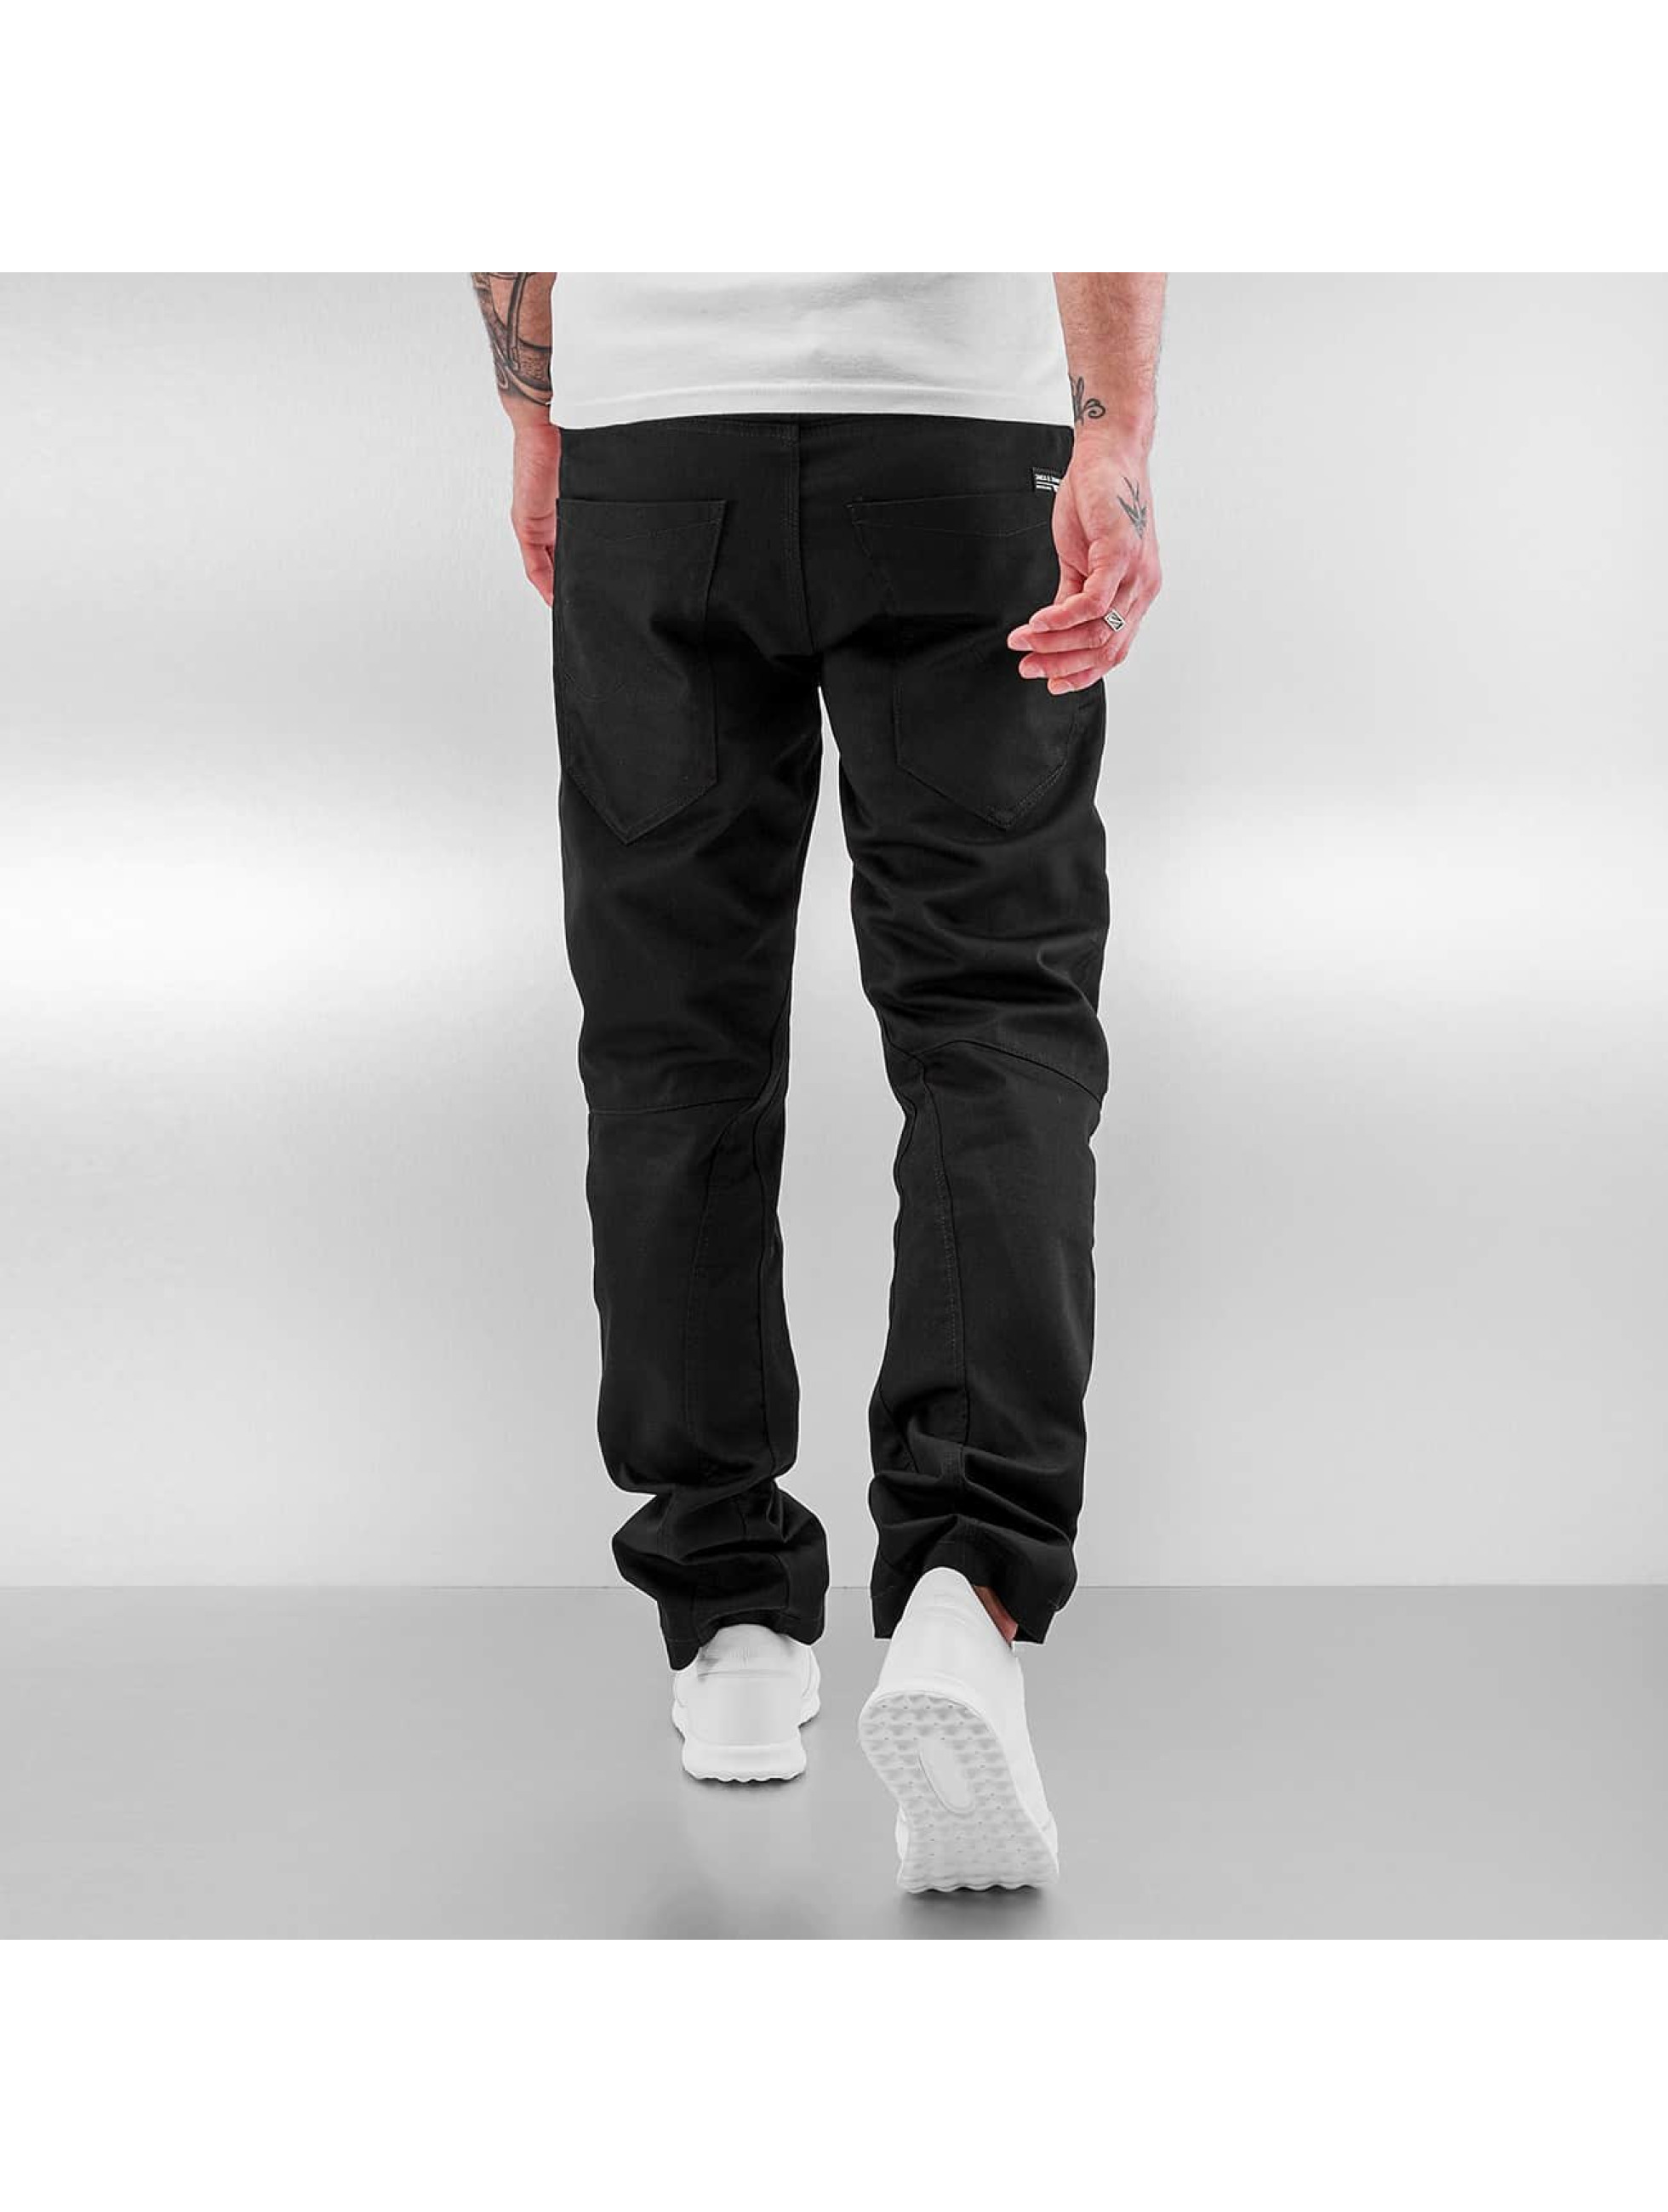 Jack & Jones Pantalon chino jjiStan jjiSac noir